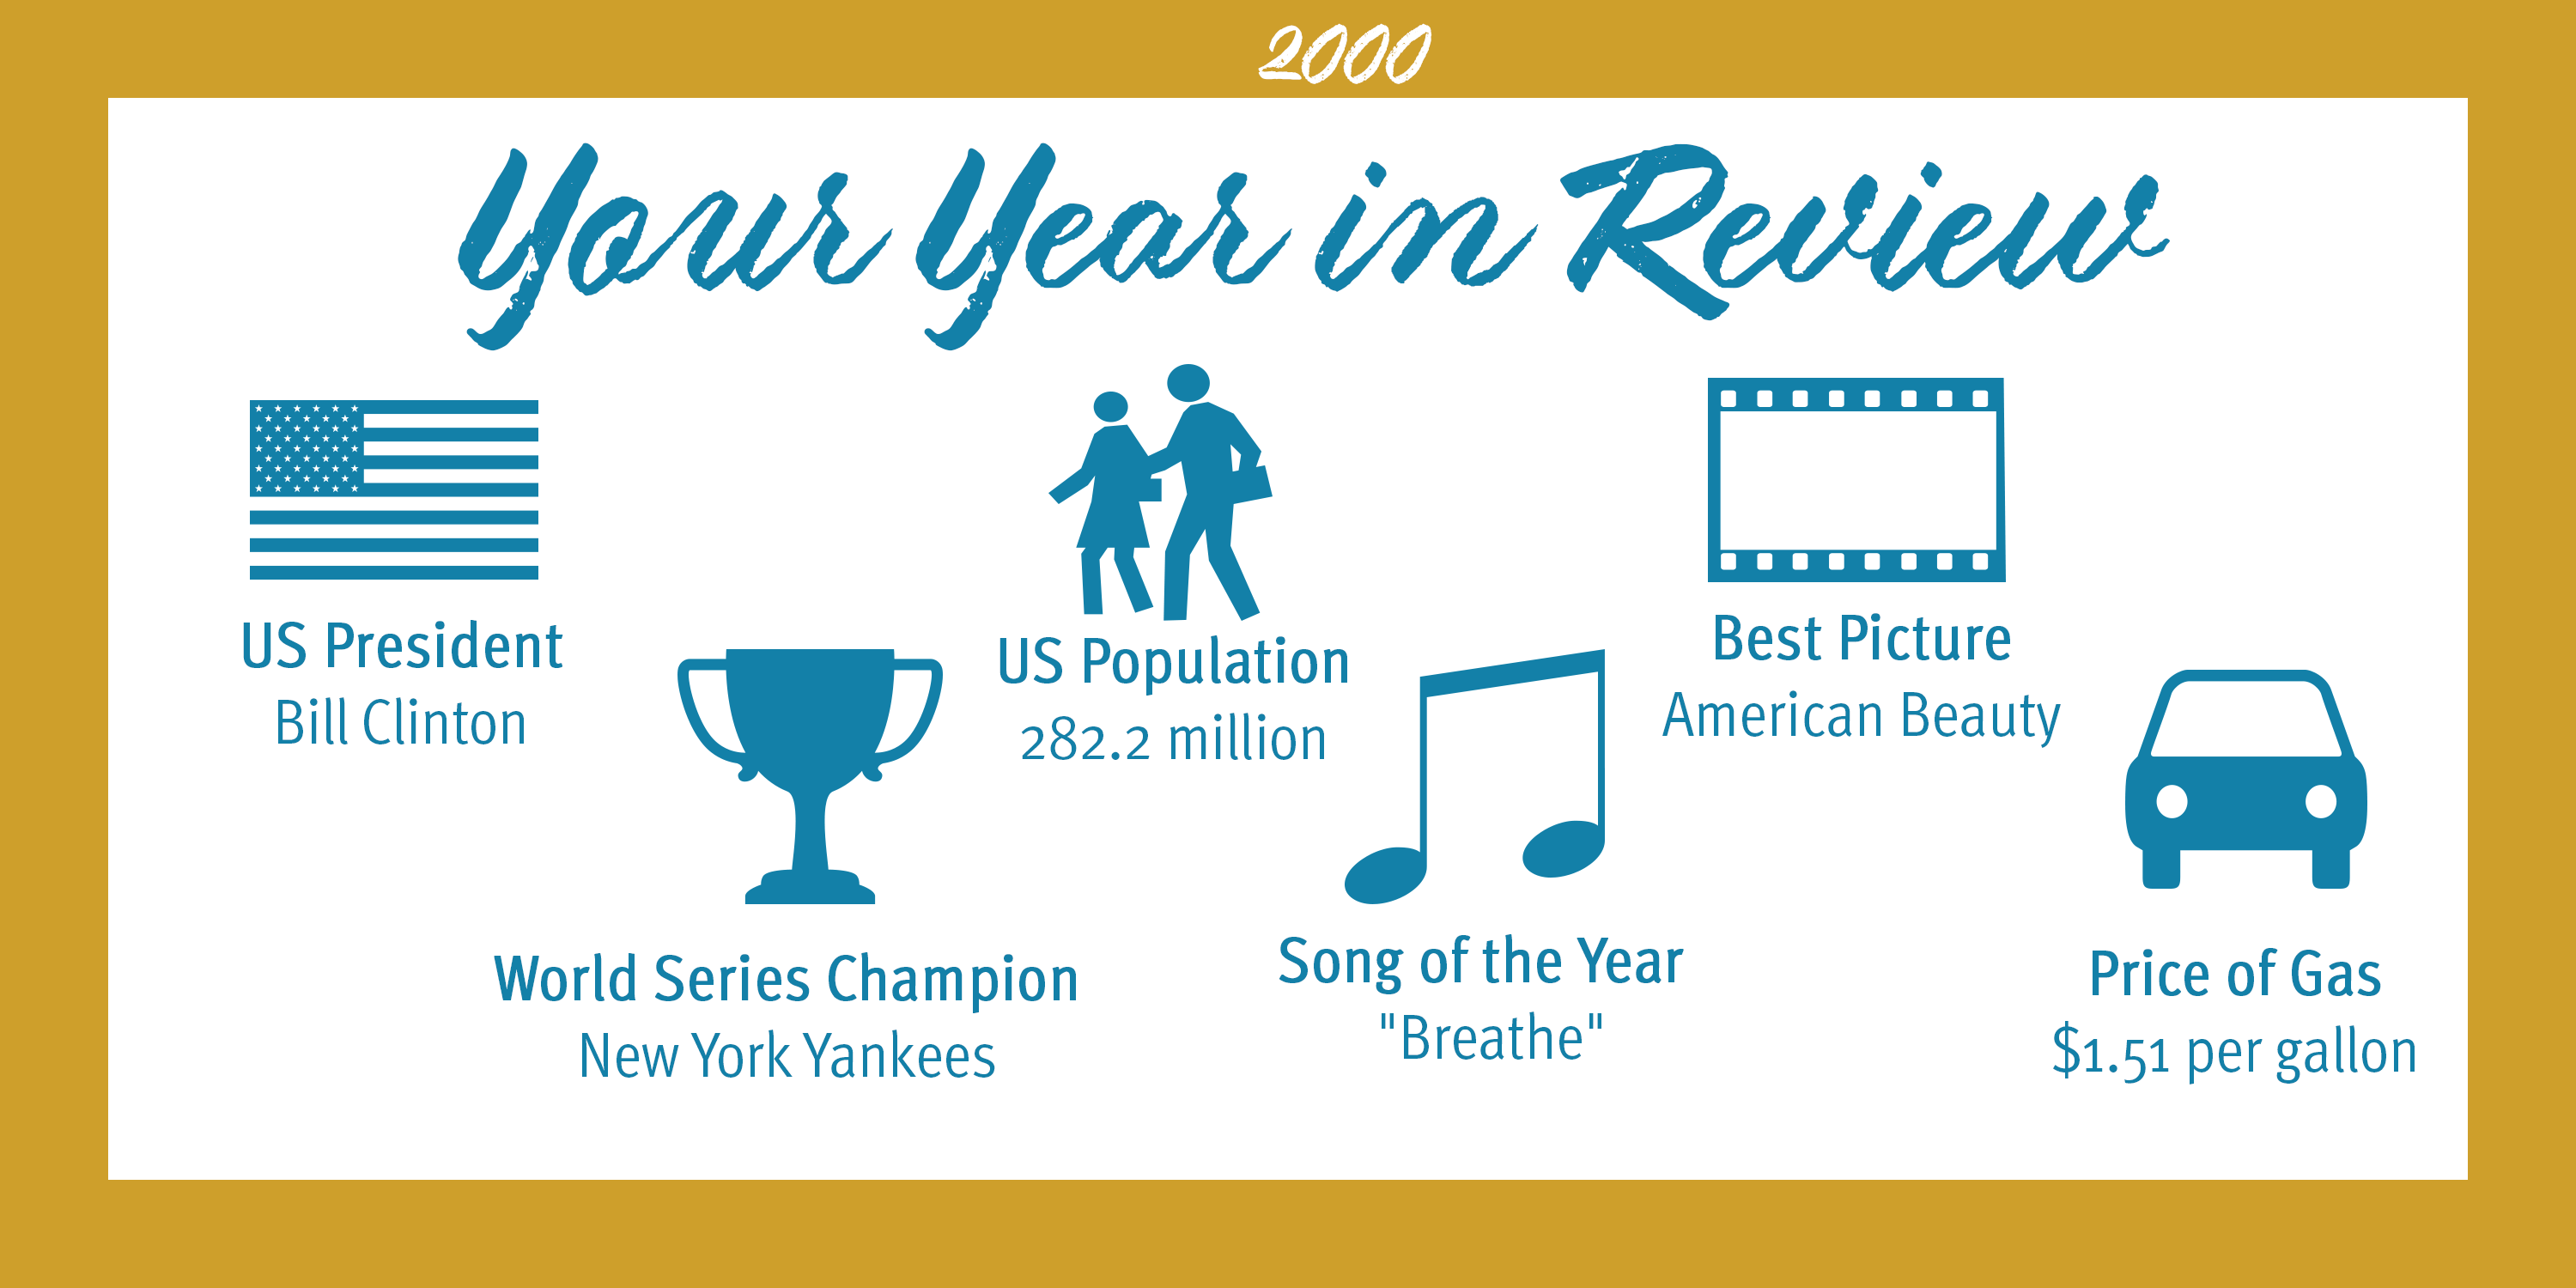 Class of 2000 Year in Review